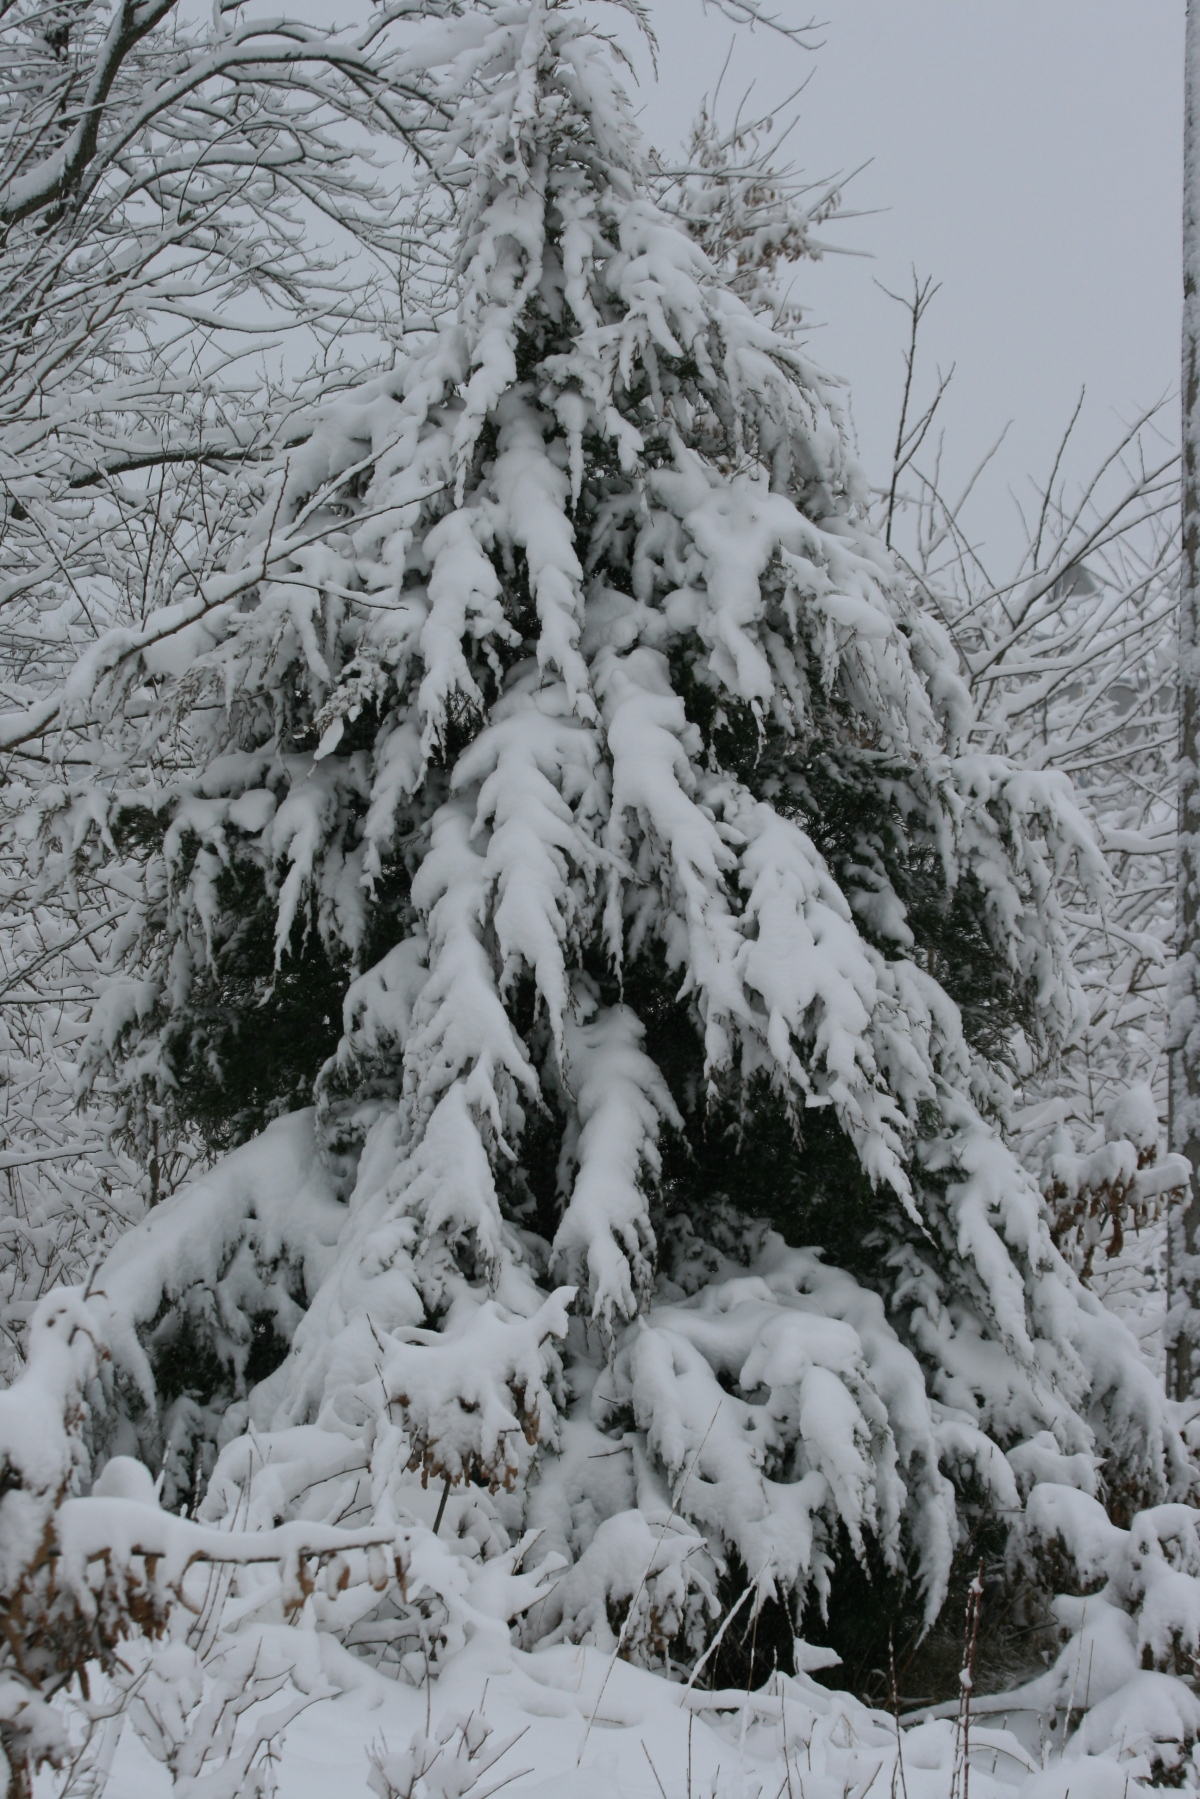 Snowy, Droopy Evergreen